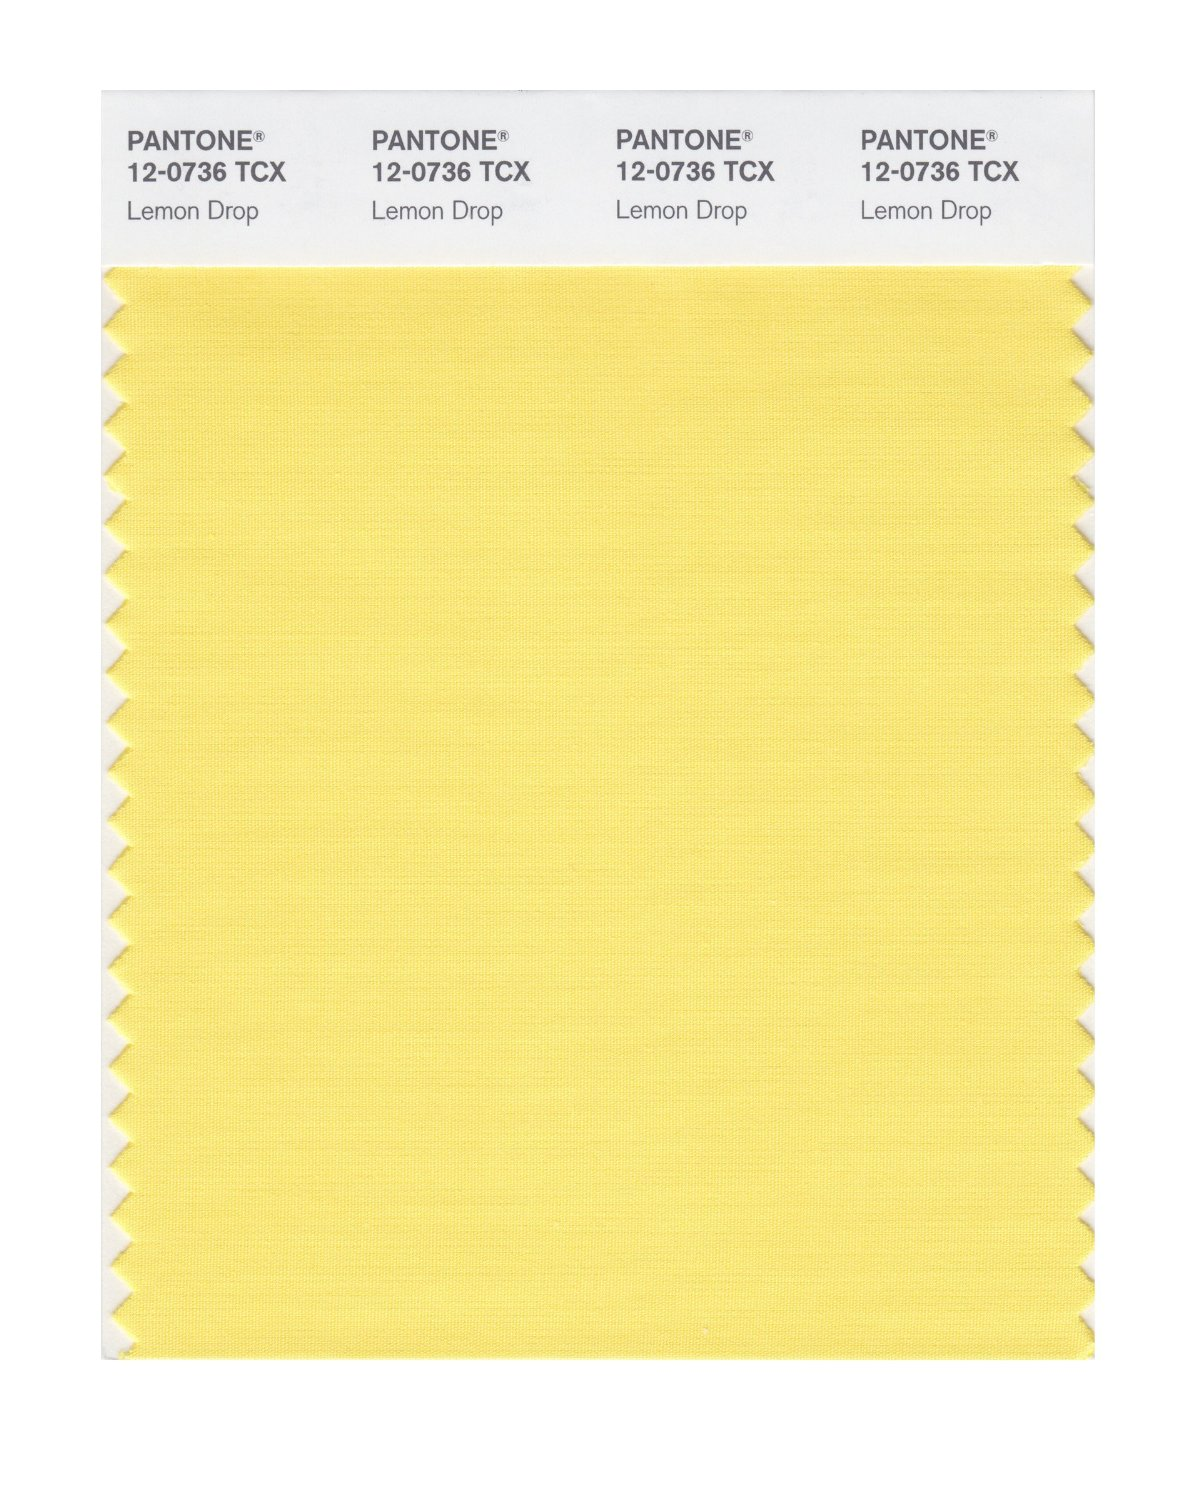 Pantone Smart Swatch 12-0736 Lemon Drop